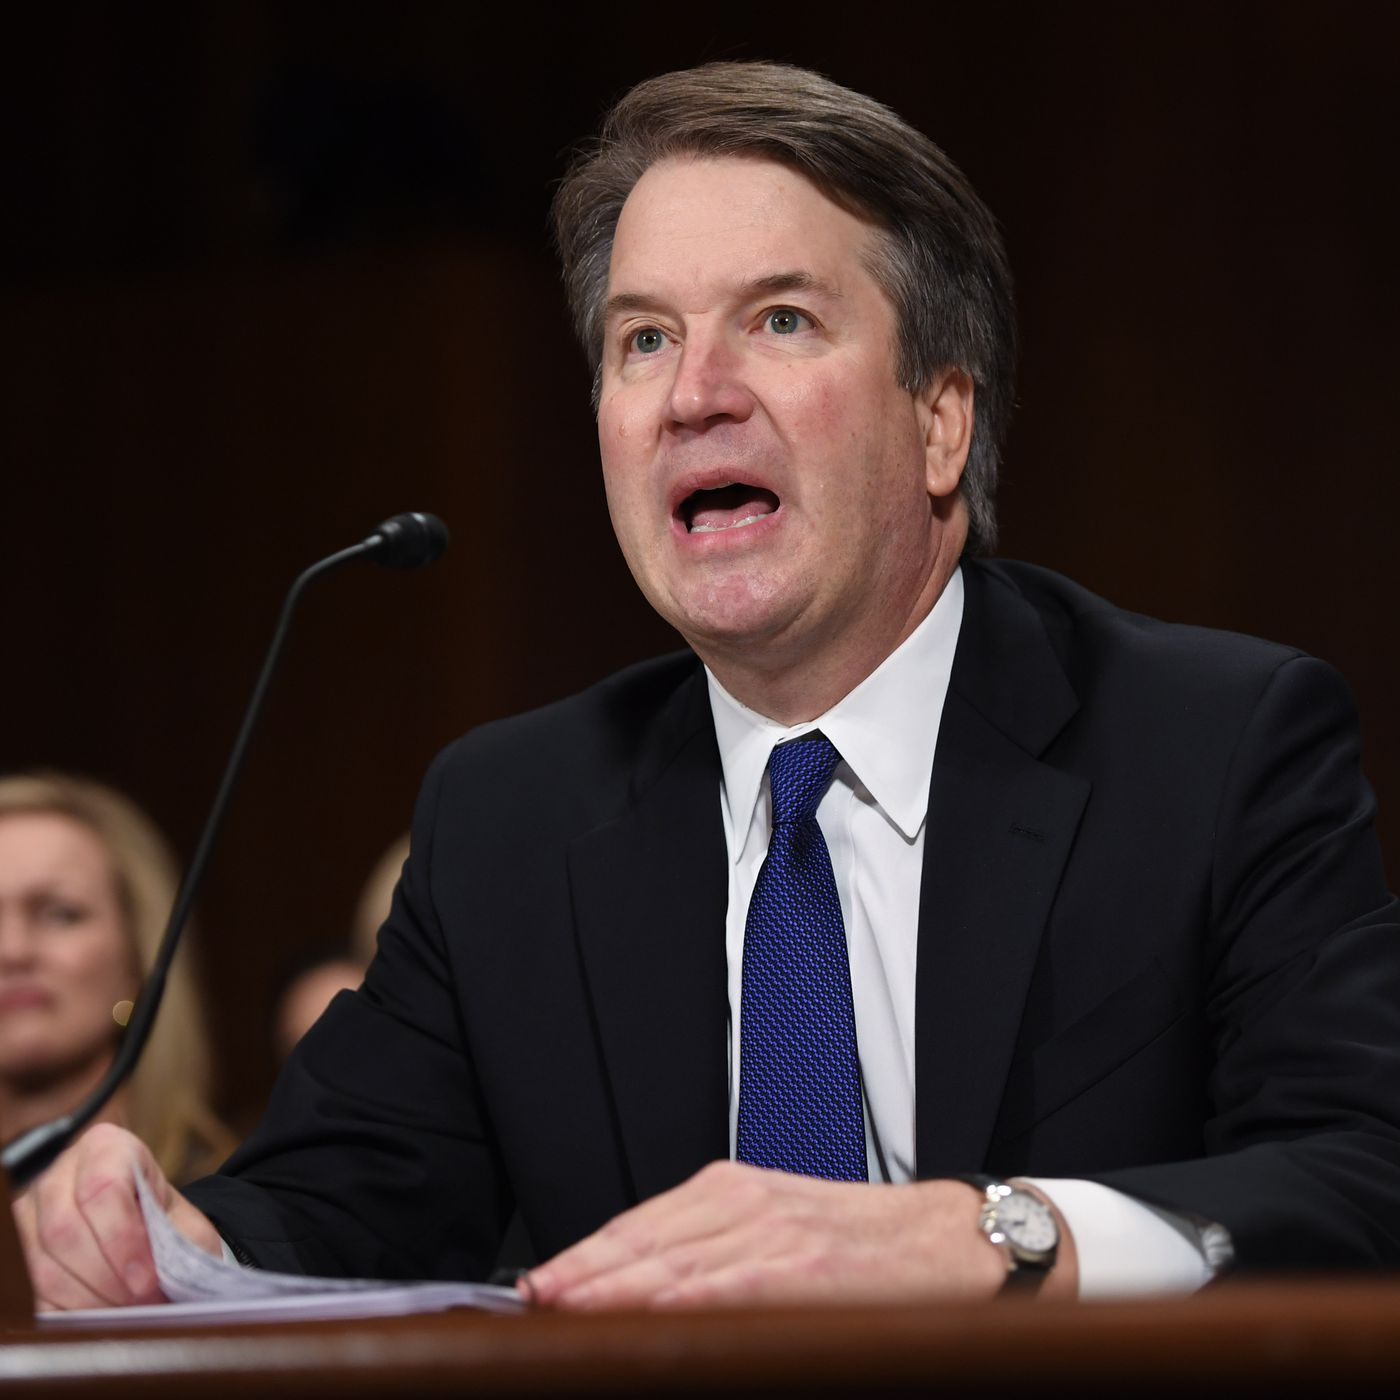 Read Brett Kavanaughs Angry Emotional Opening Statement Vox